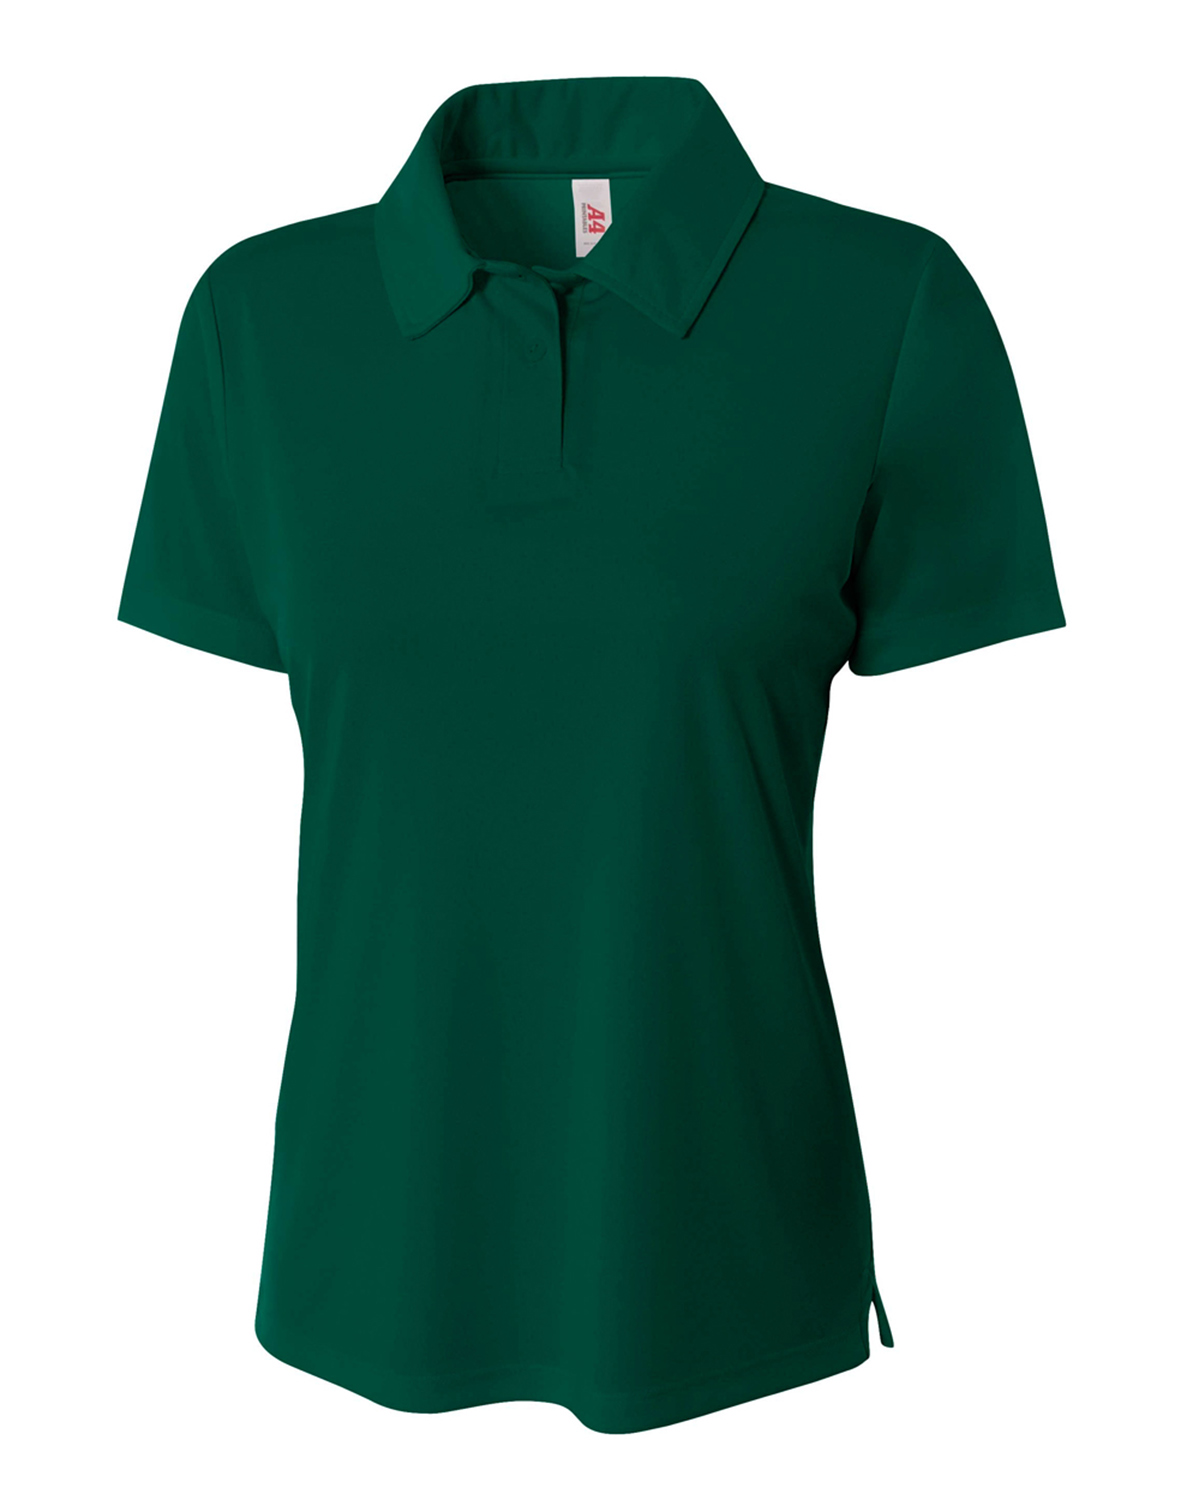 A4 Drop Ship NW3261 - Ladies' Solid Interlock Polo